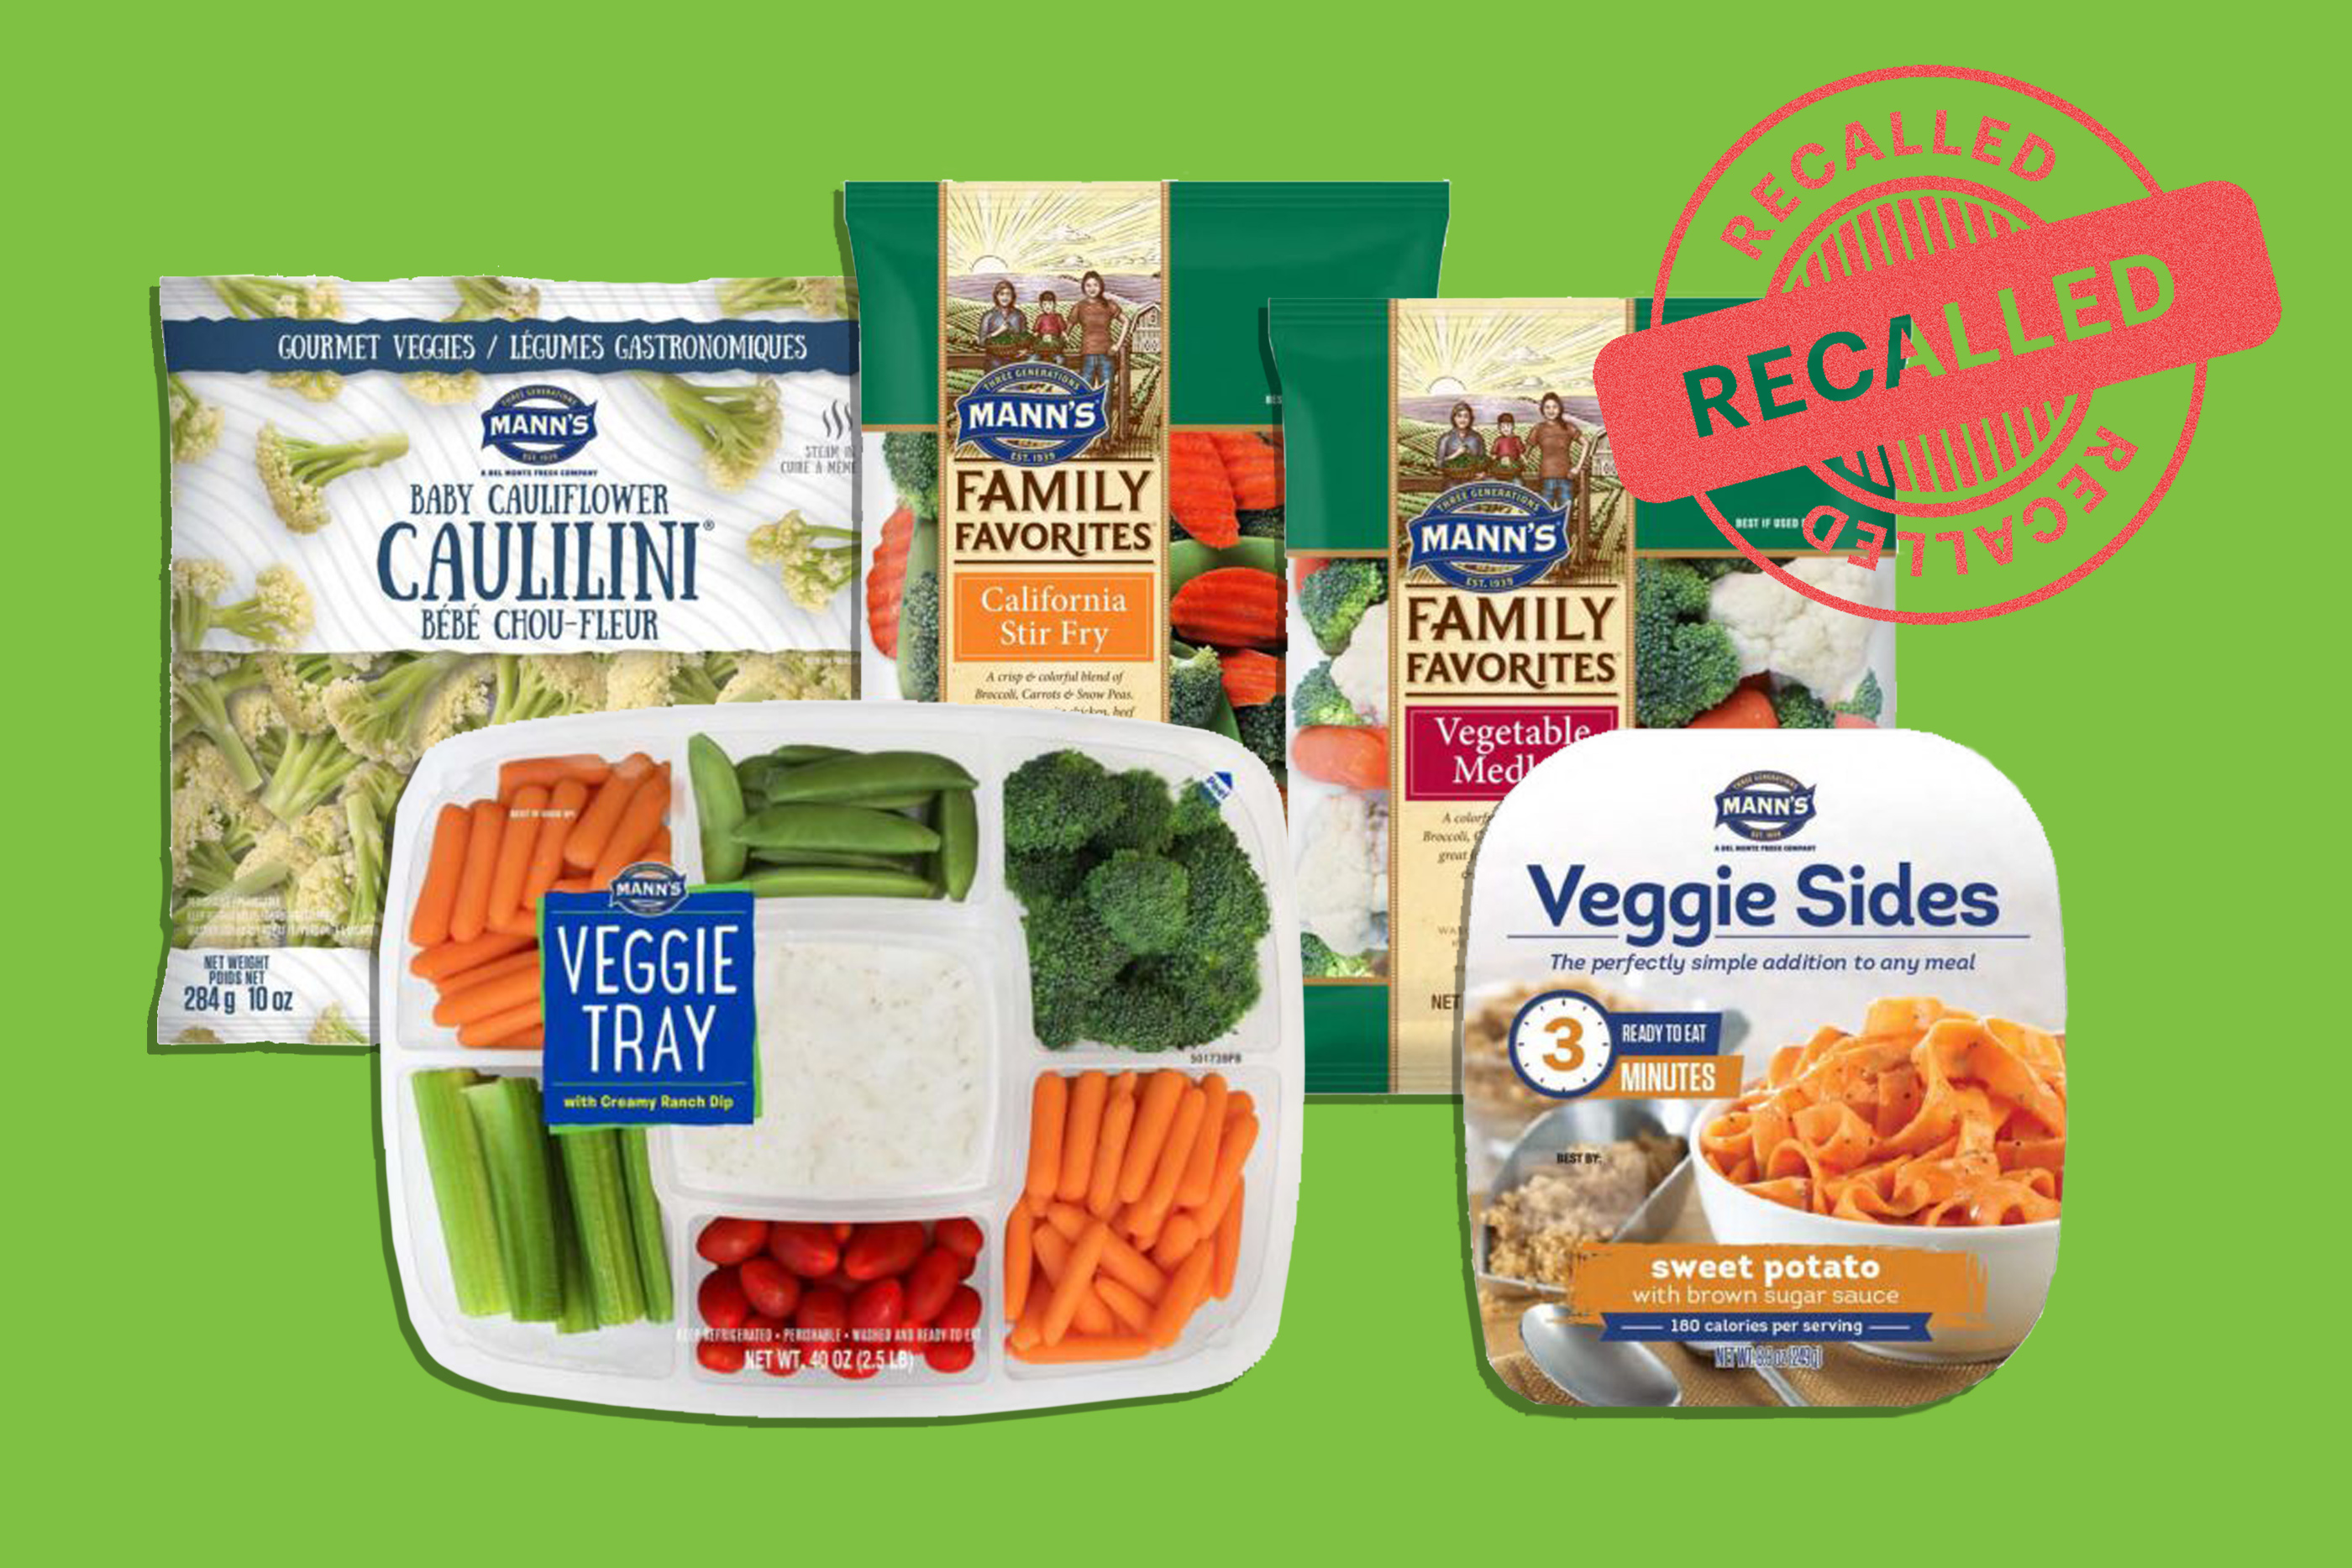 frozen veggies recalled